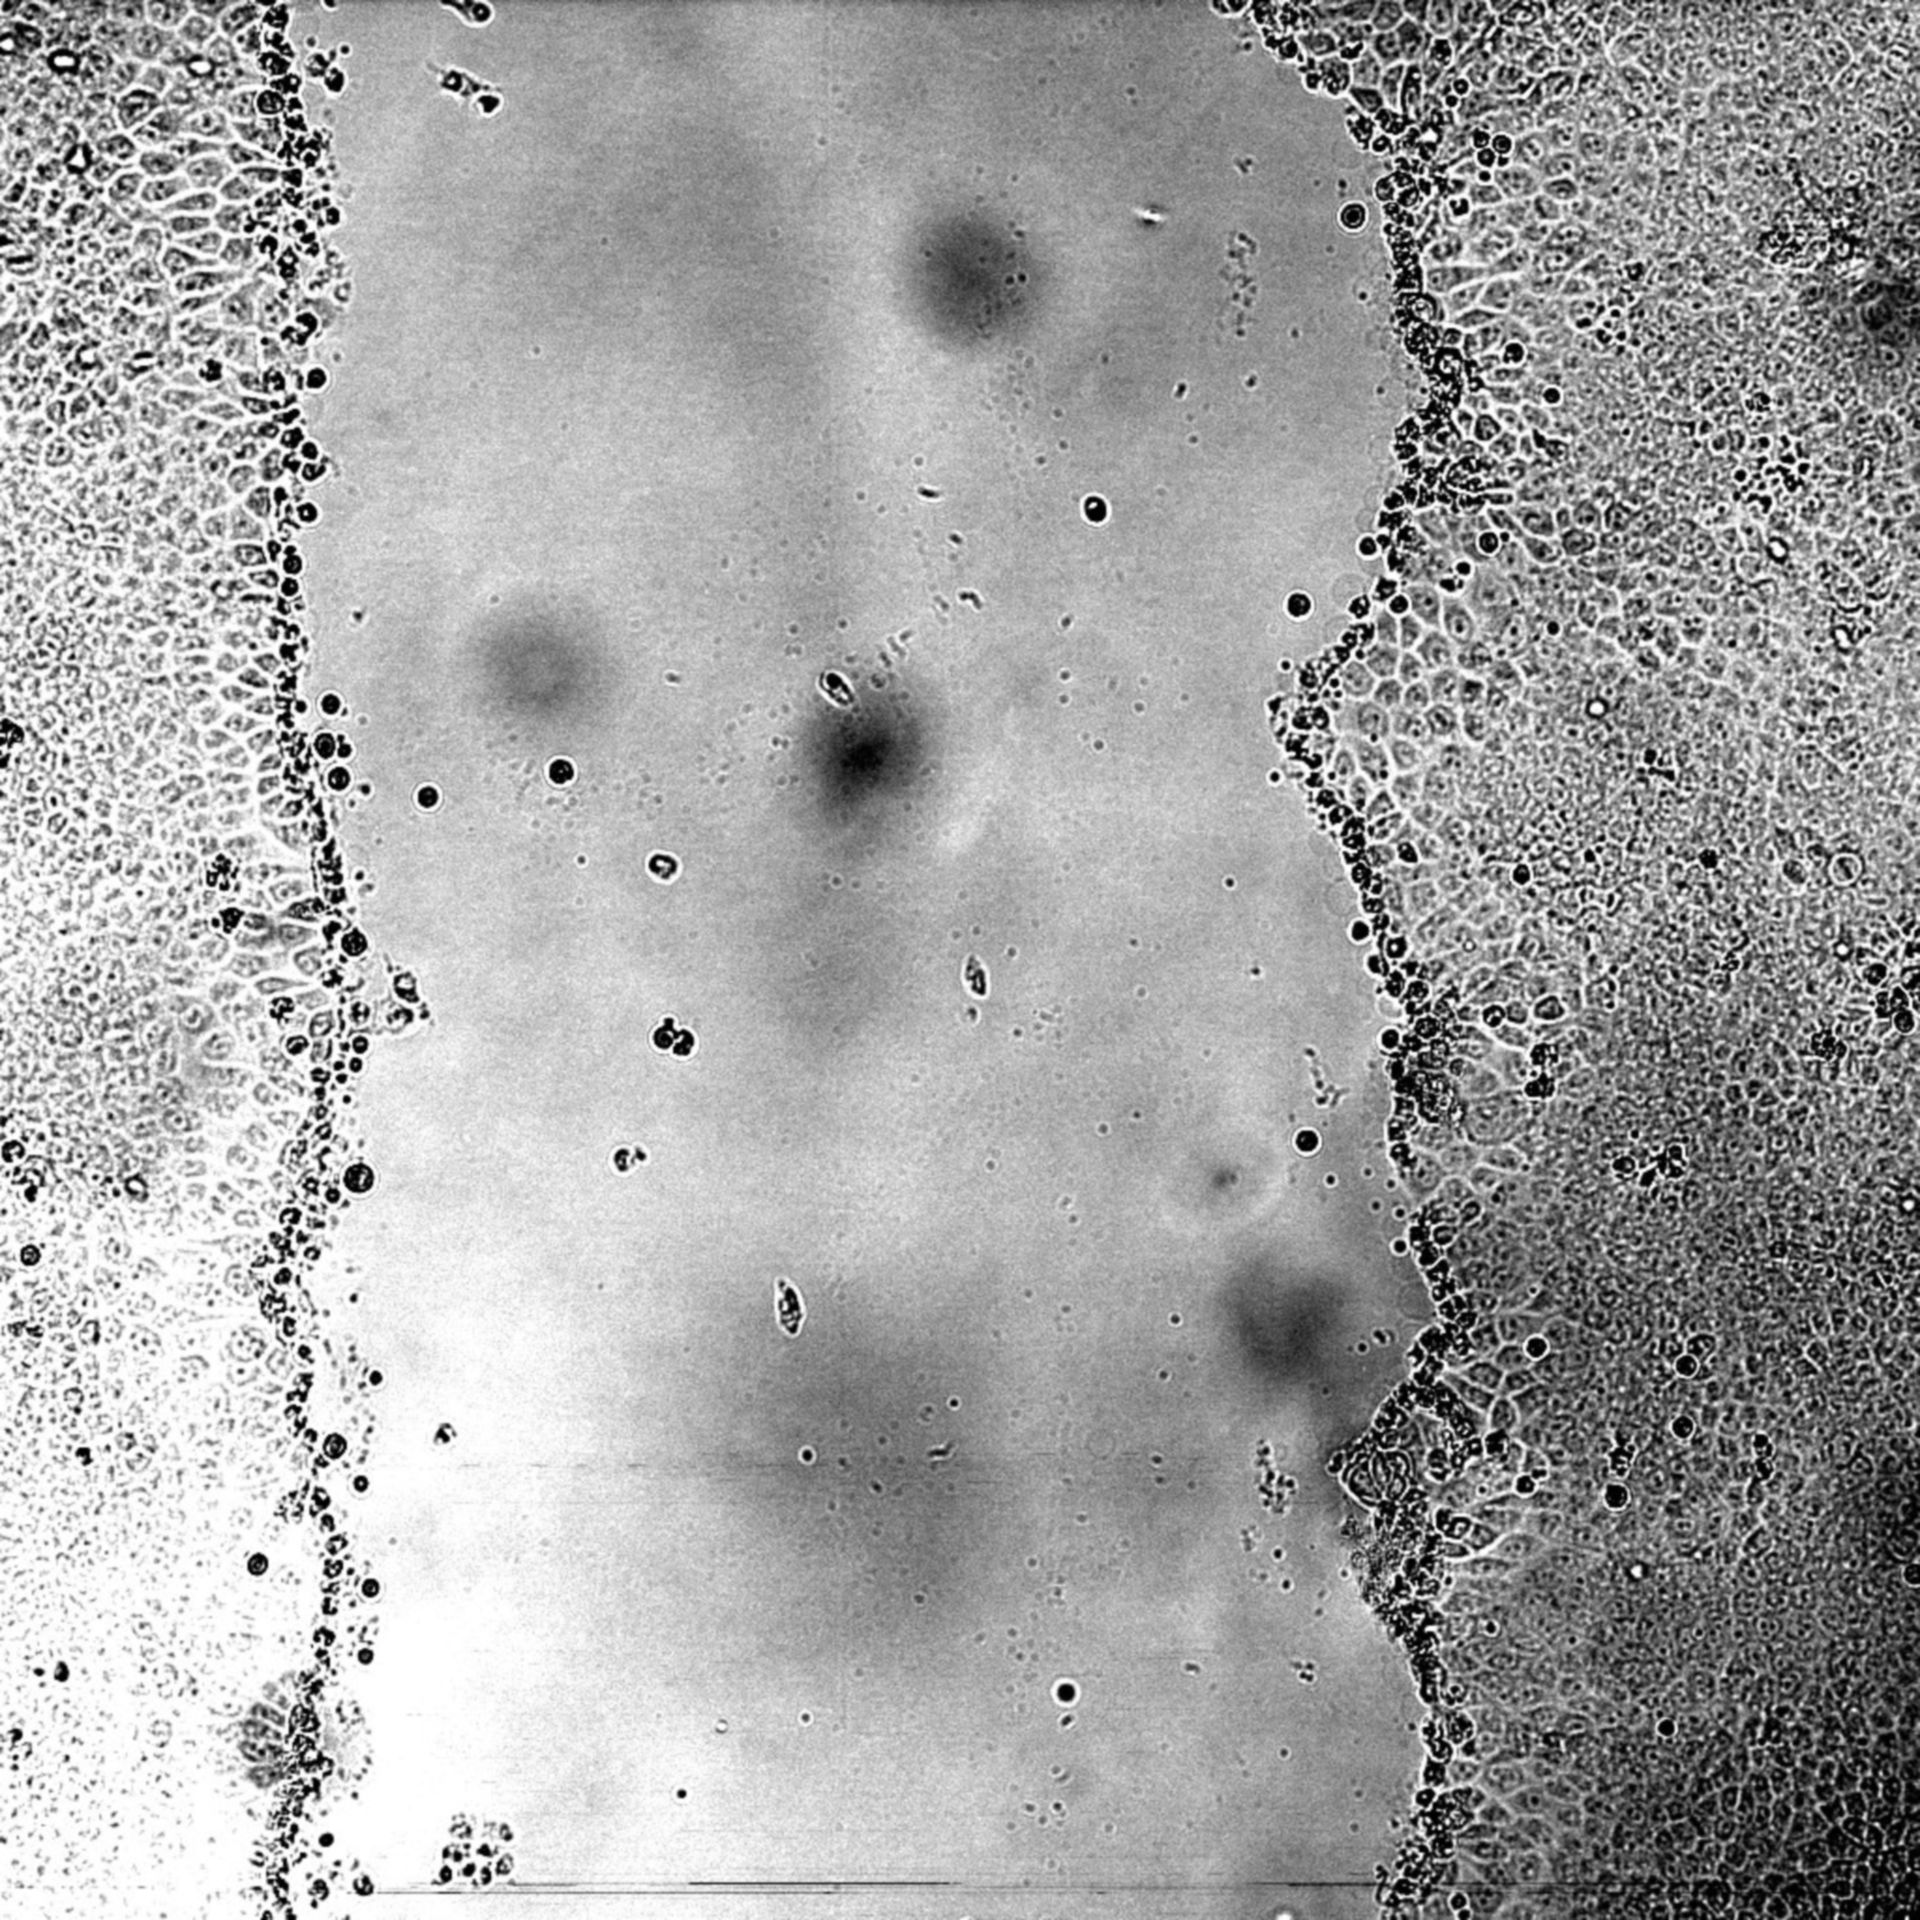 Canis lupus familiaris (Kidney epithelial cell) - CIL:44505